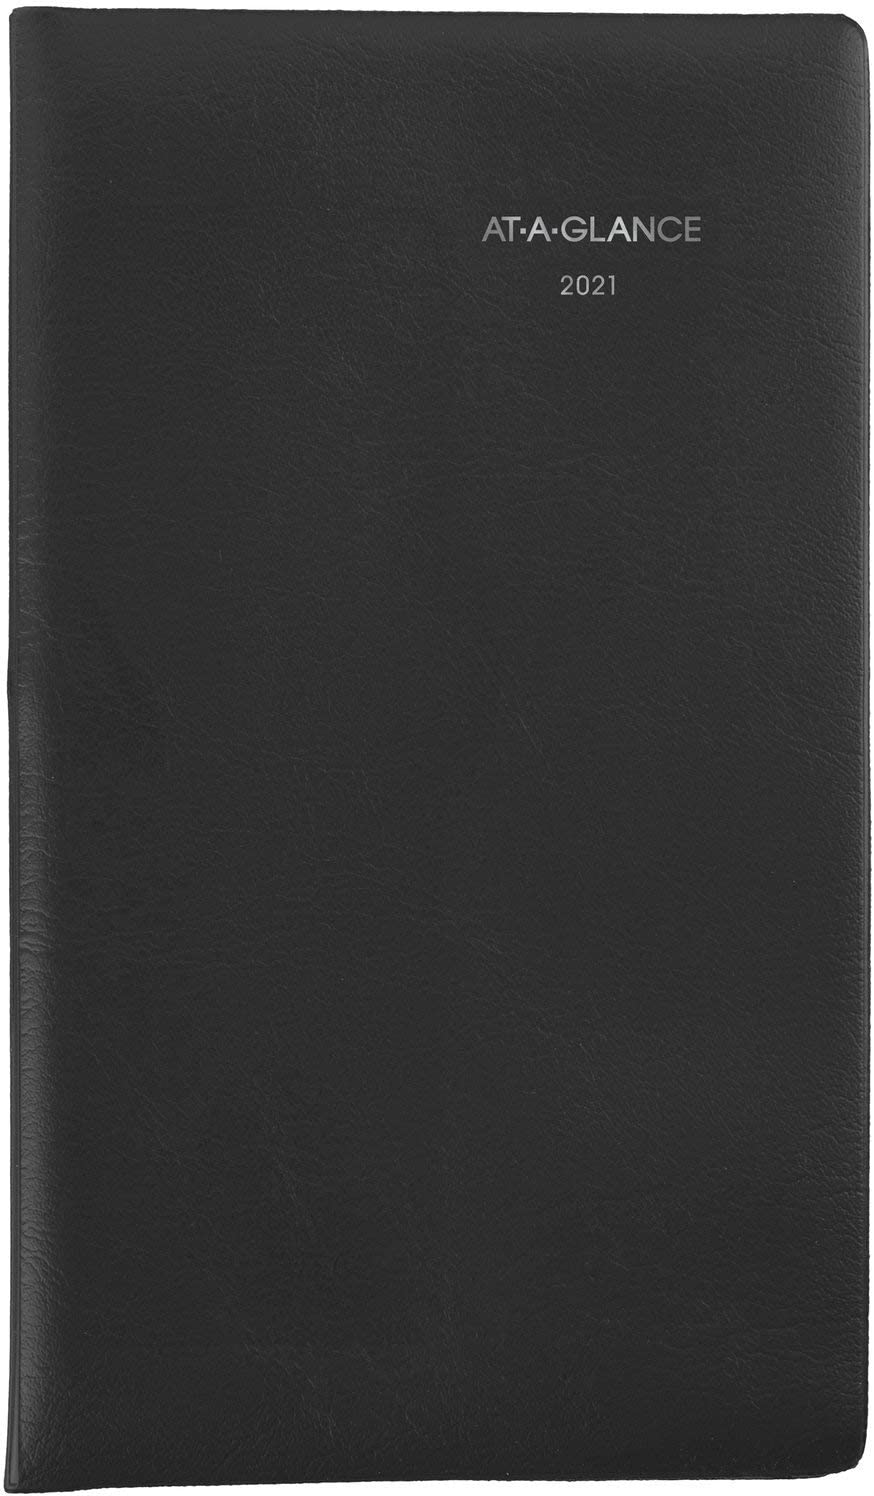 "2021 Pocket Calendar by AT-A-GLANCE, Weekly Planner, 3-1/2"" x 6"", Pocket Size, DayMinder, Black (SK480021)"